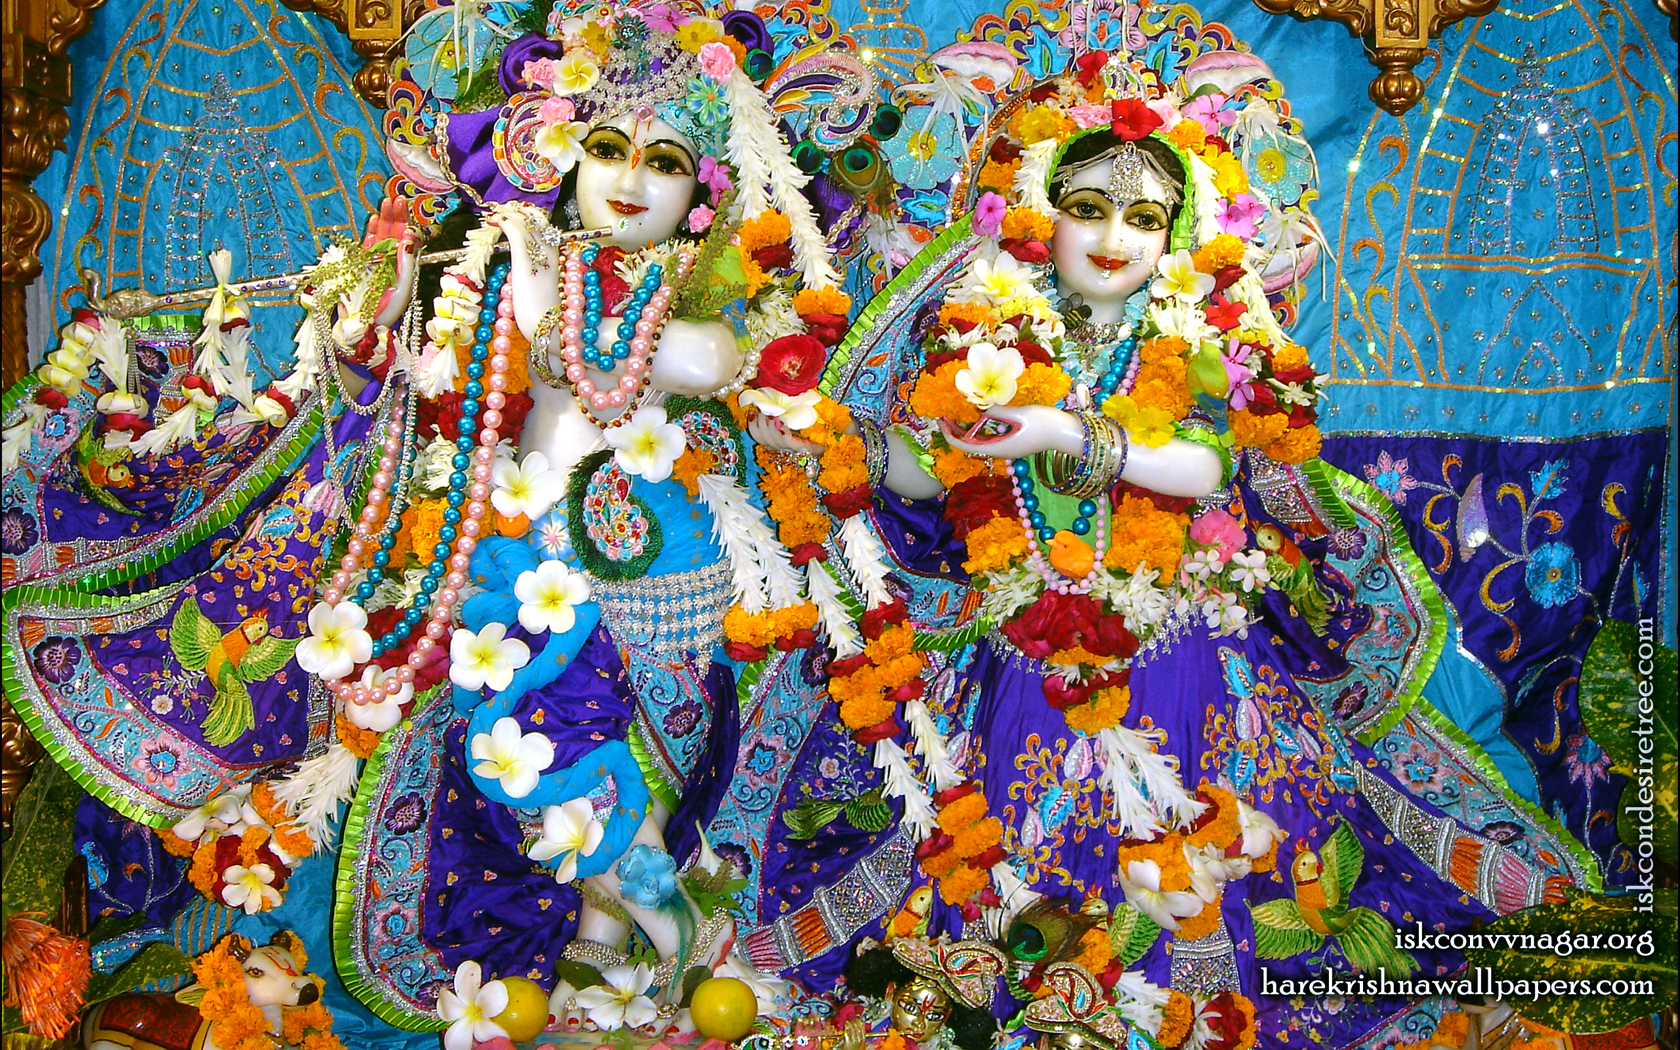 Sri Sri Radha Giridhari Wallpaper (010) Size 1680x1050 Download